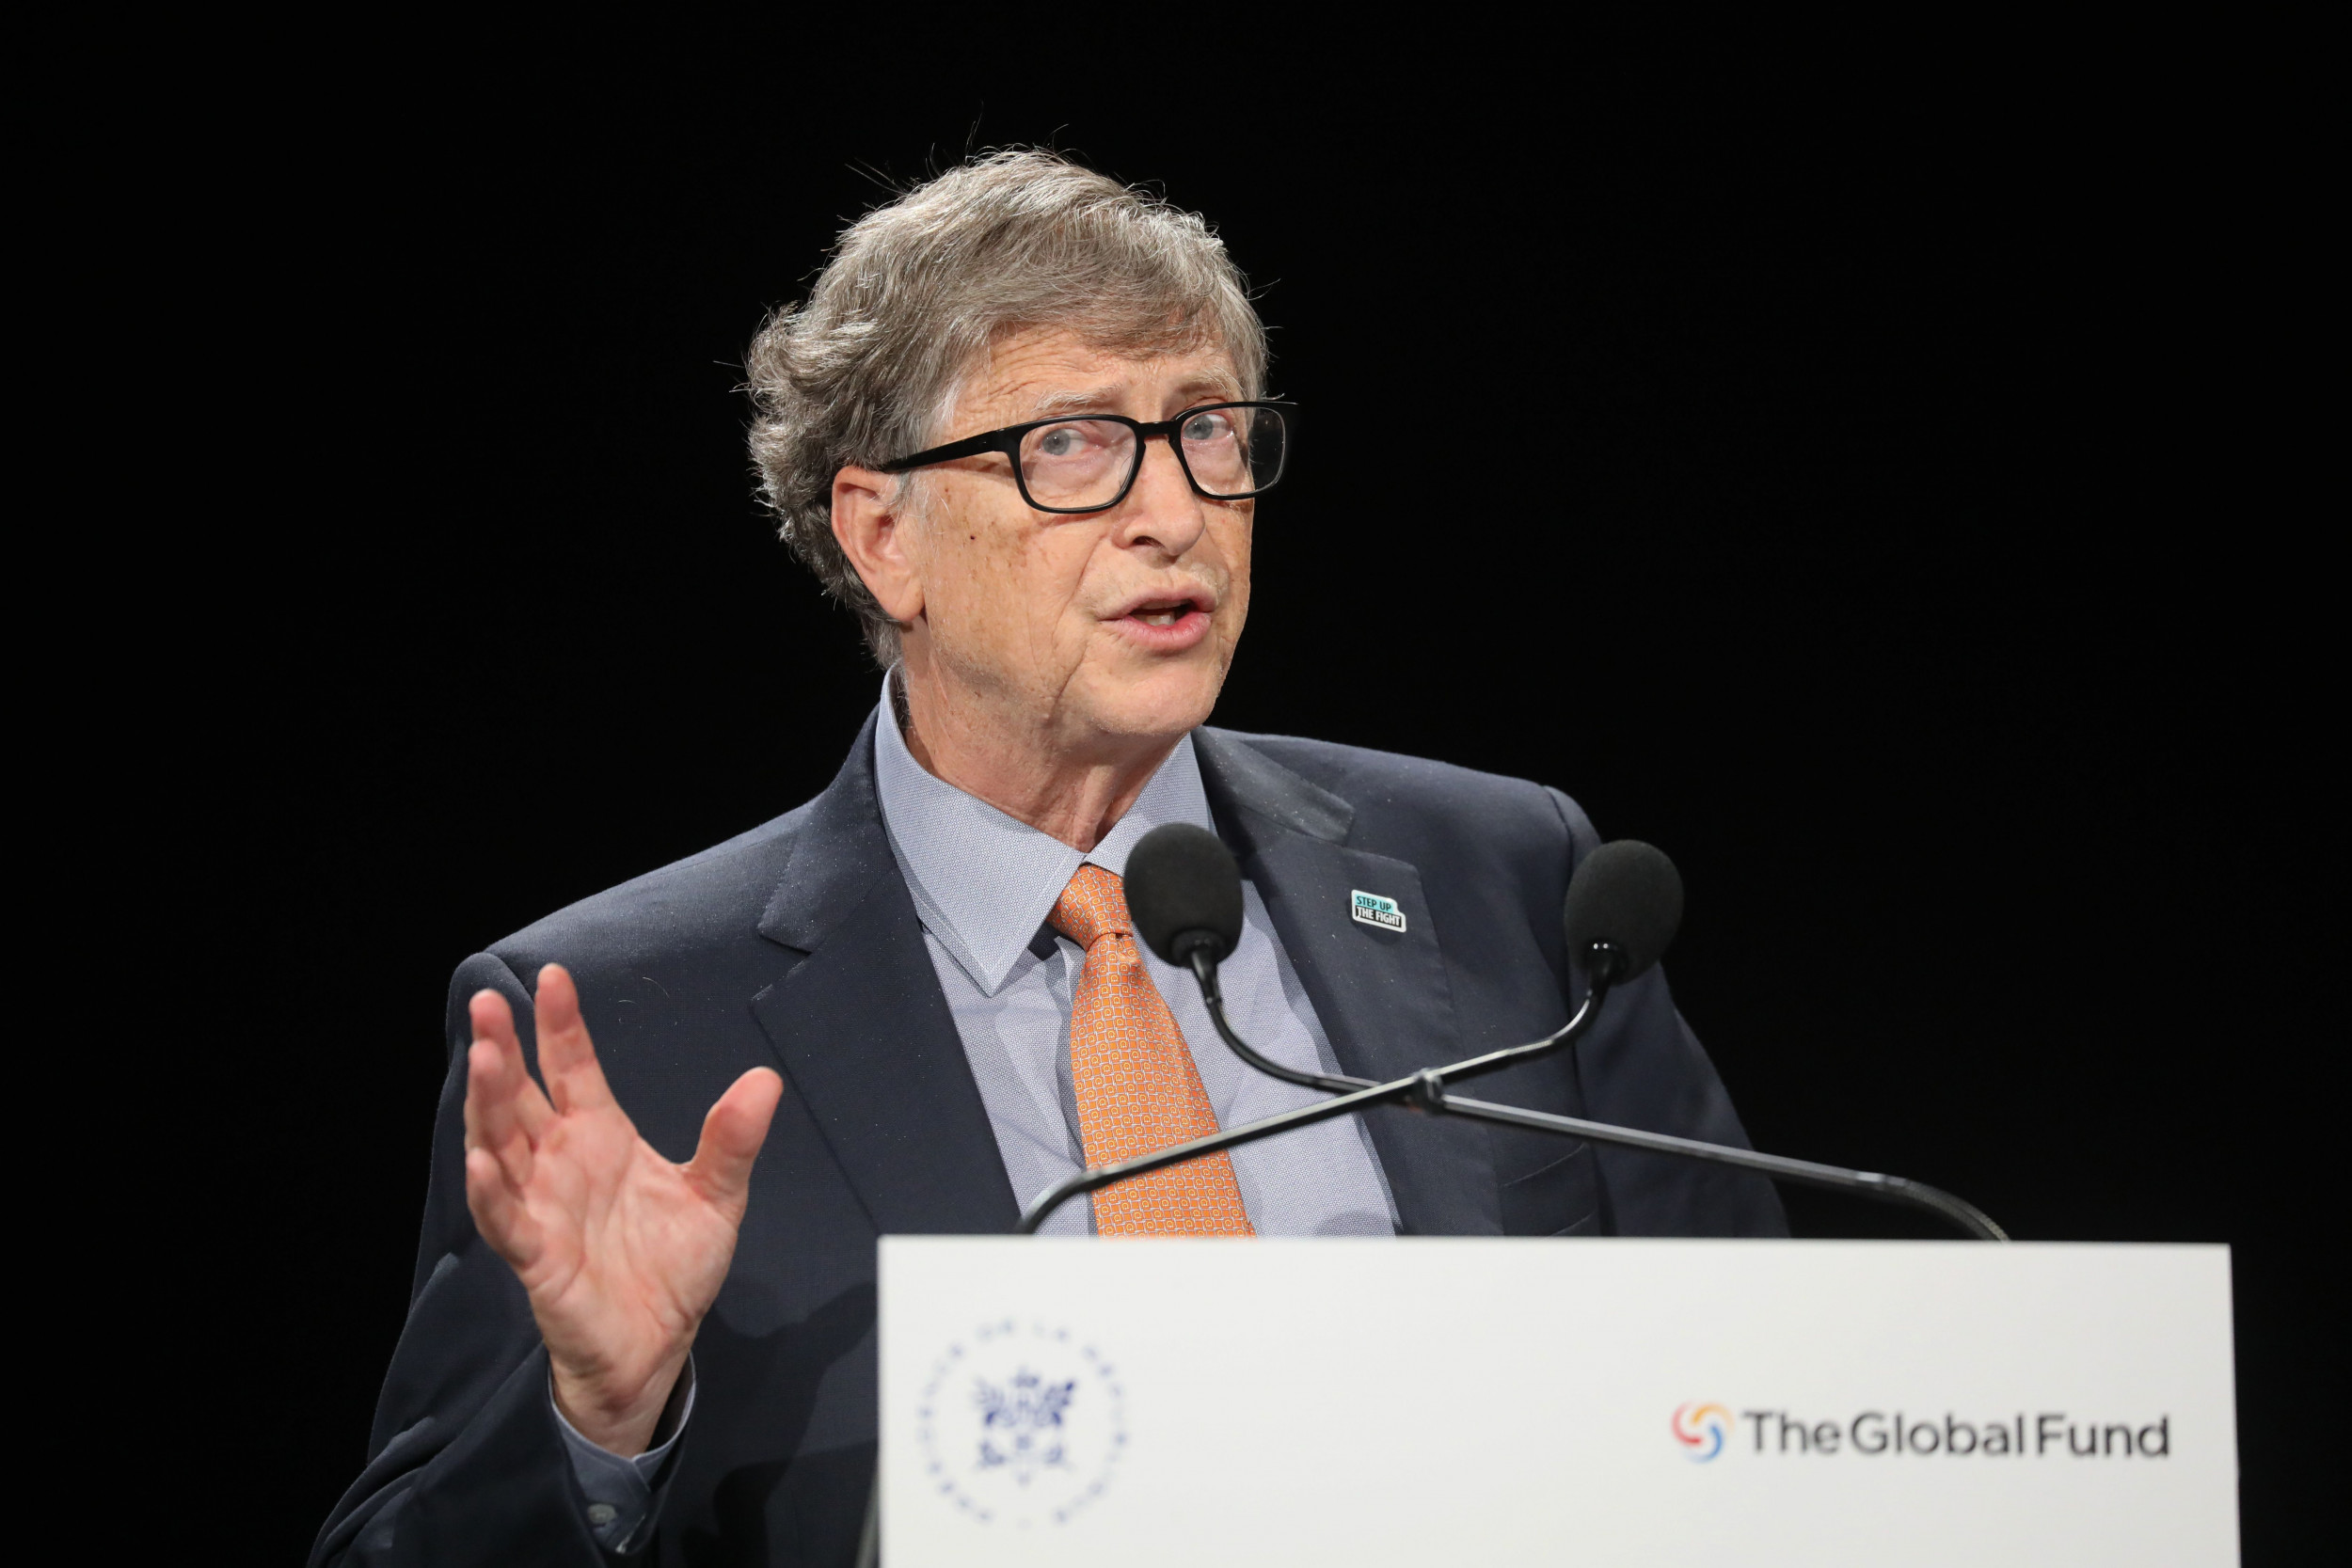 """Bill Gates says Trump administration hired Scott Atlas because """"he agrees with their crackpot theories"""""""